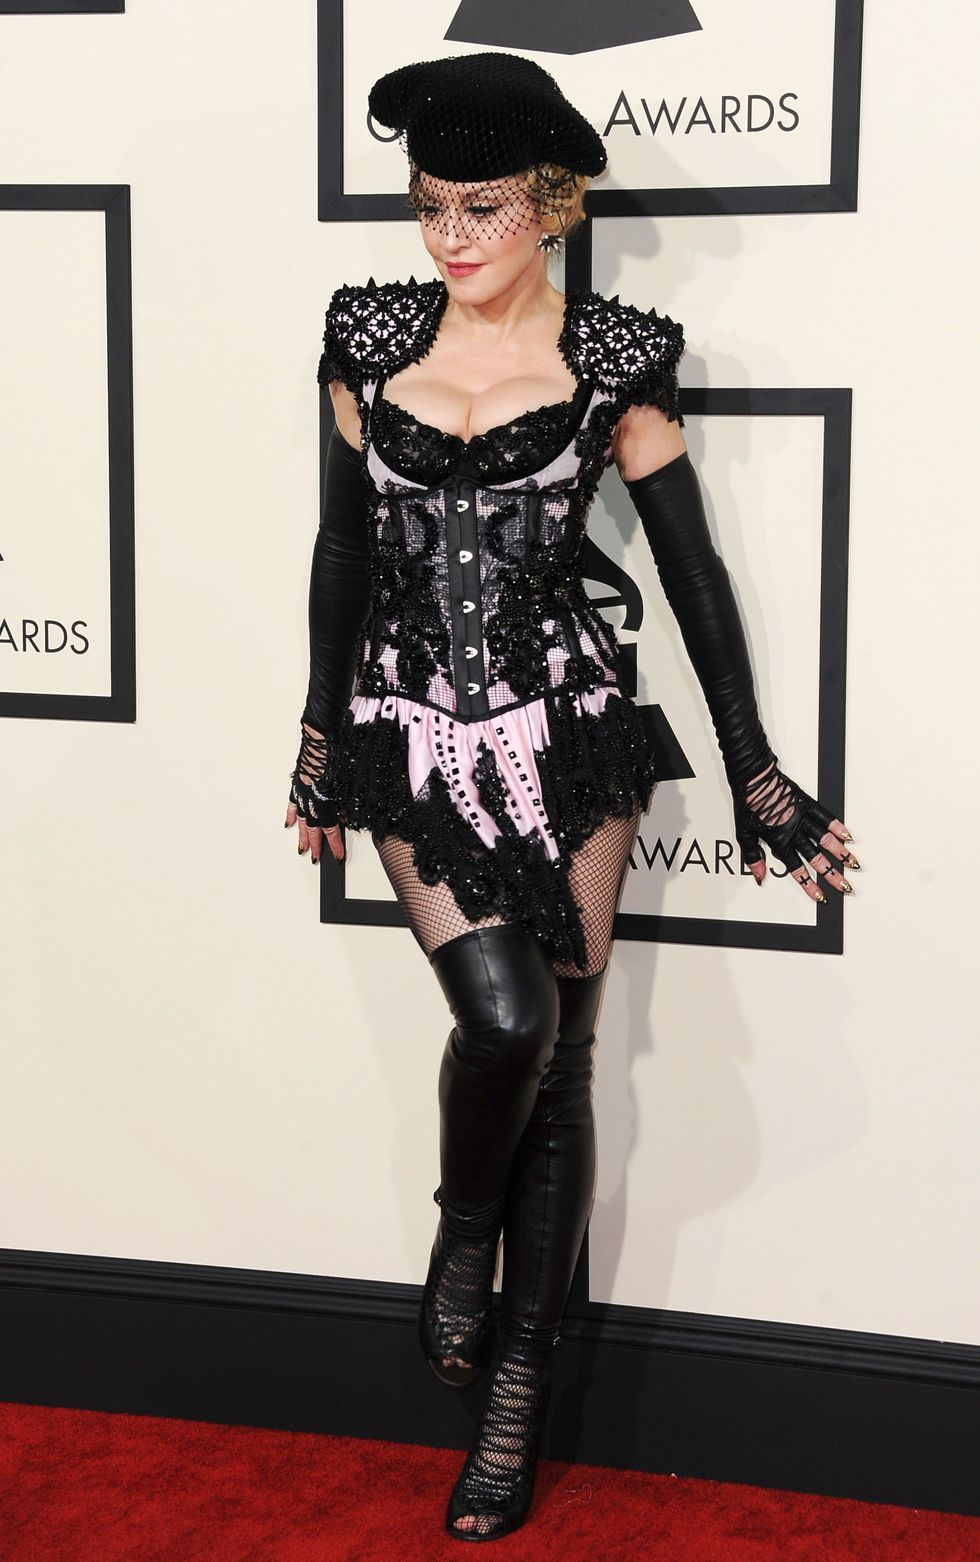 hbz-givenchy-2015-madonna-gettyimages-463010430